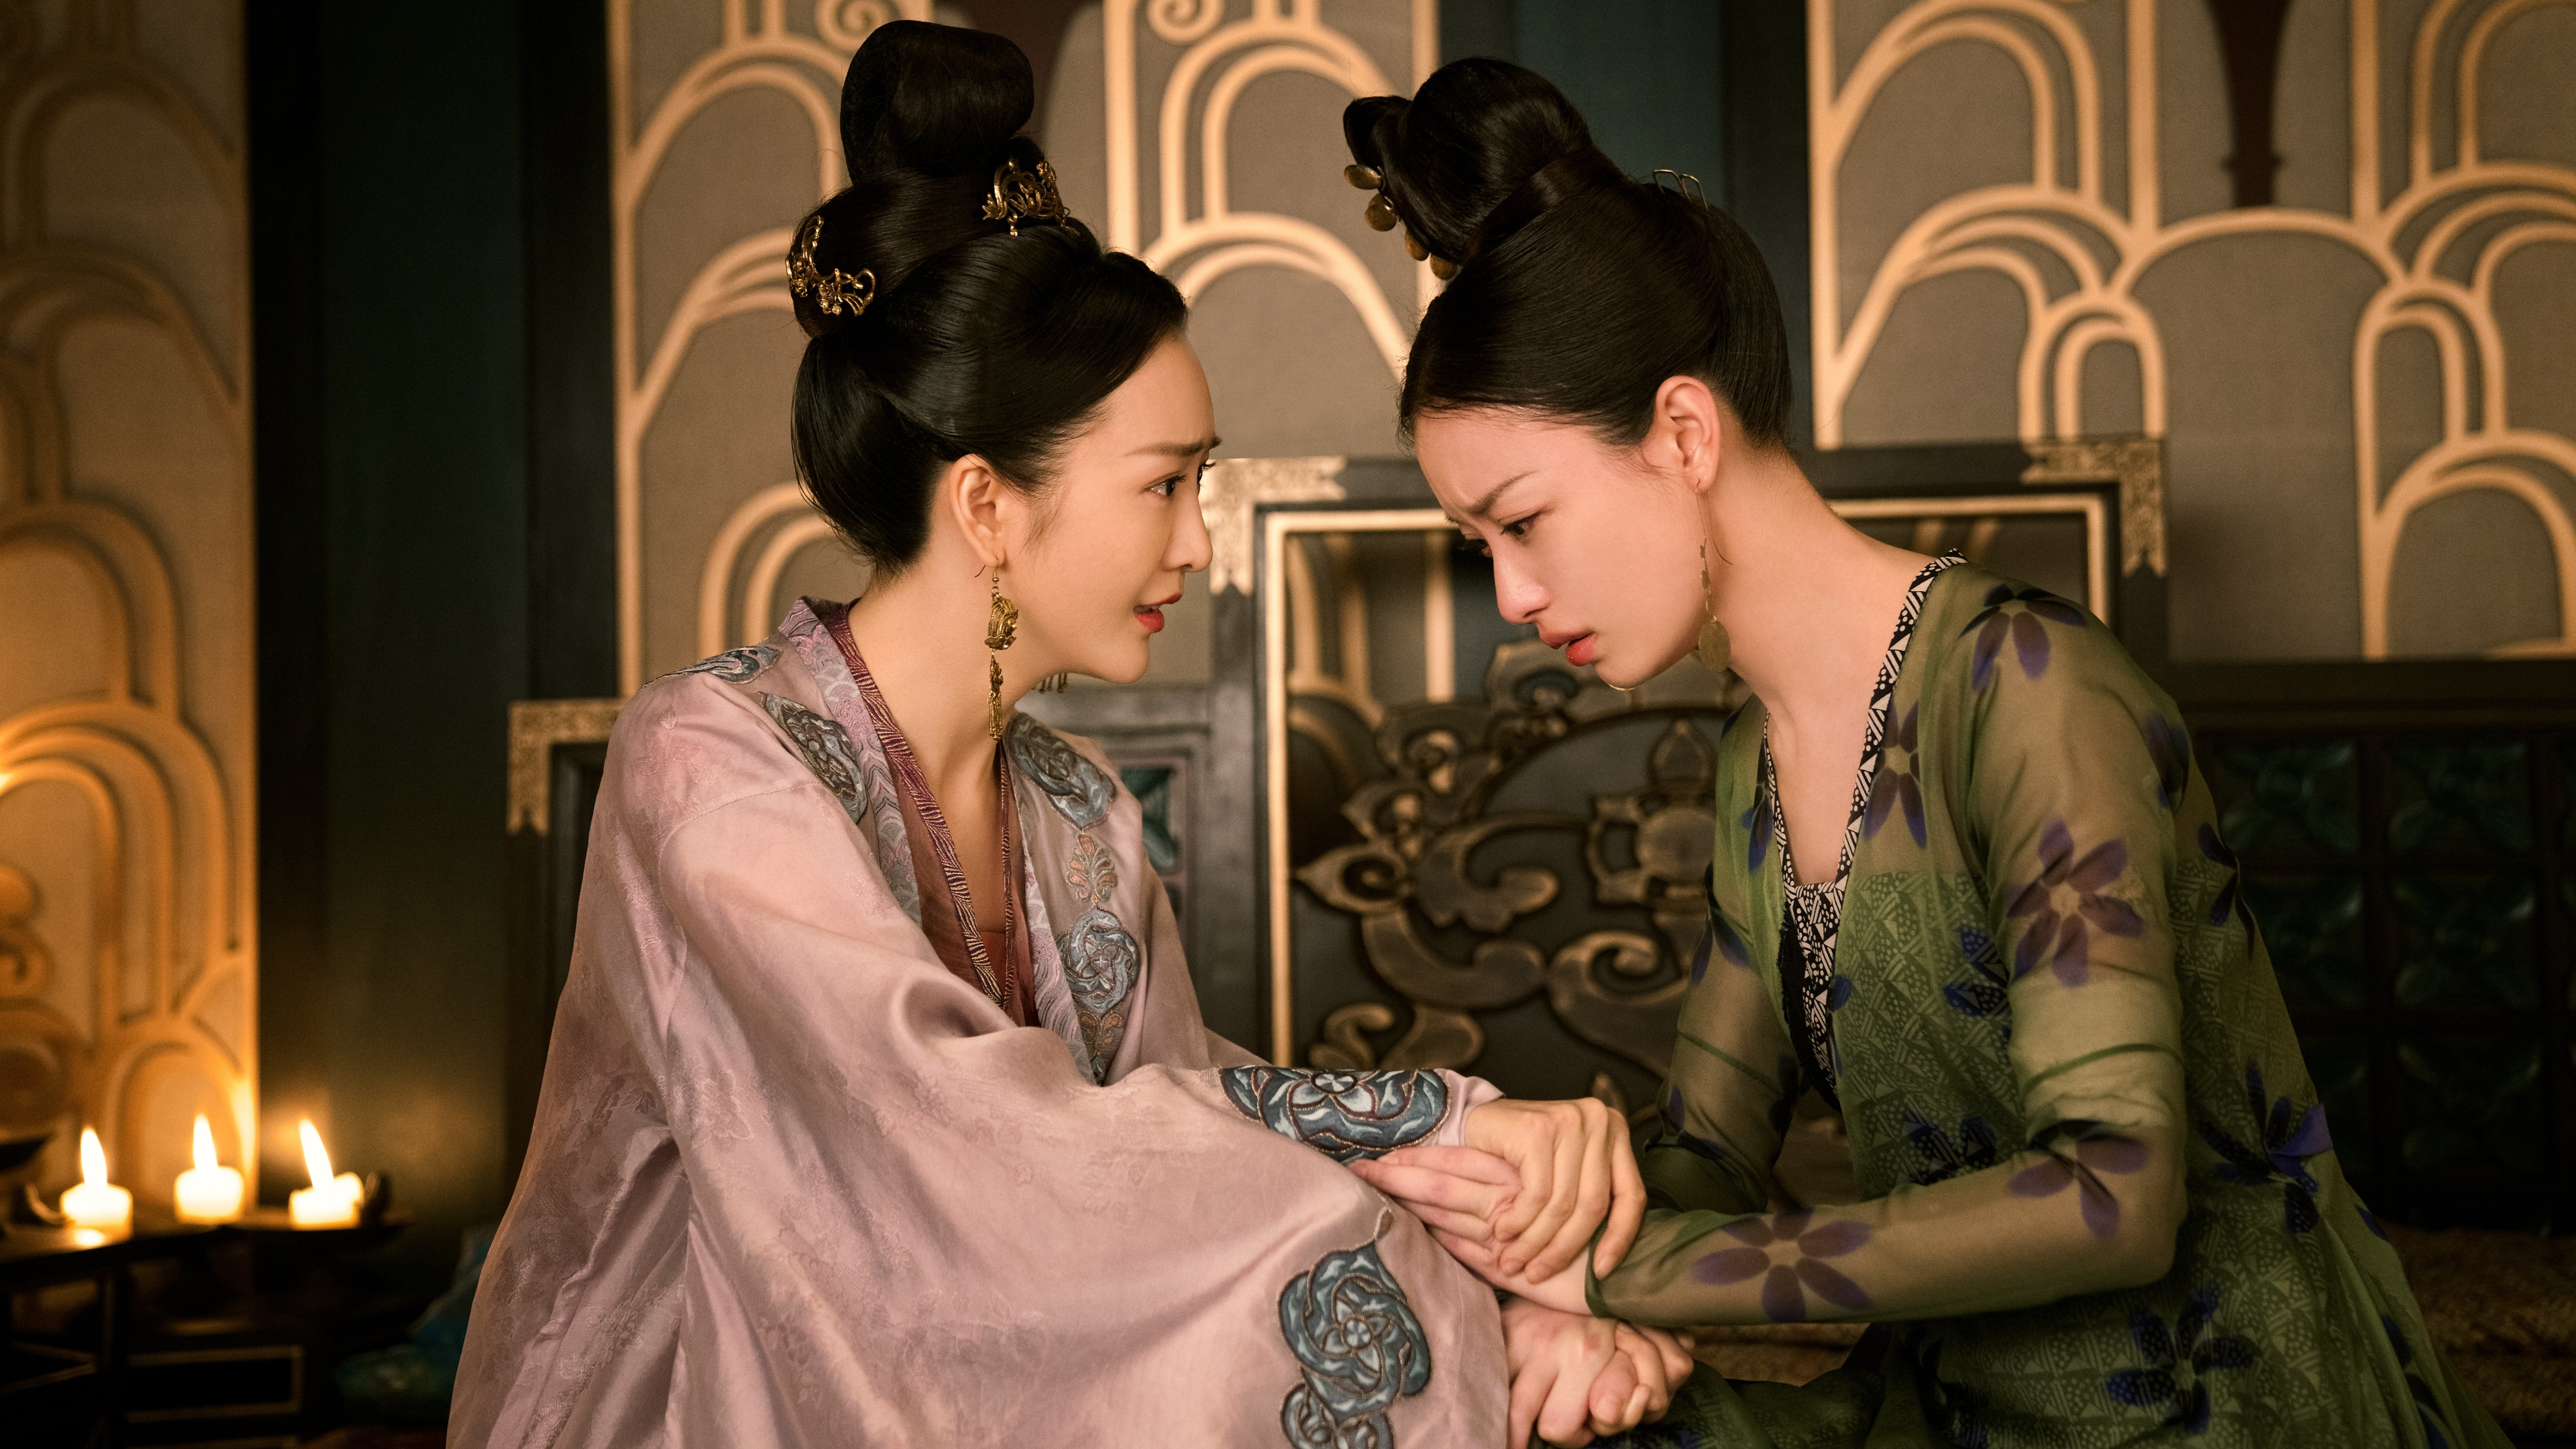 Netflix hopes Chinese TV series 'The Rise of Phoenixes